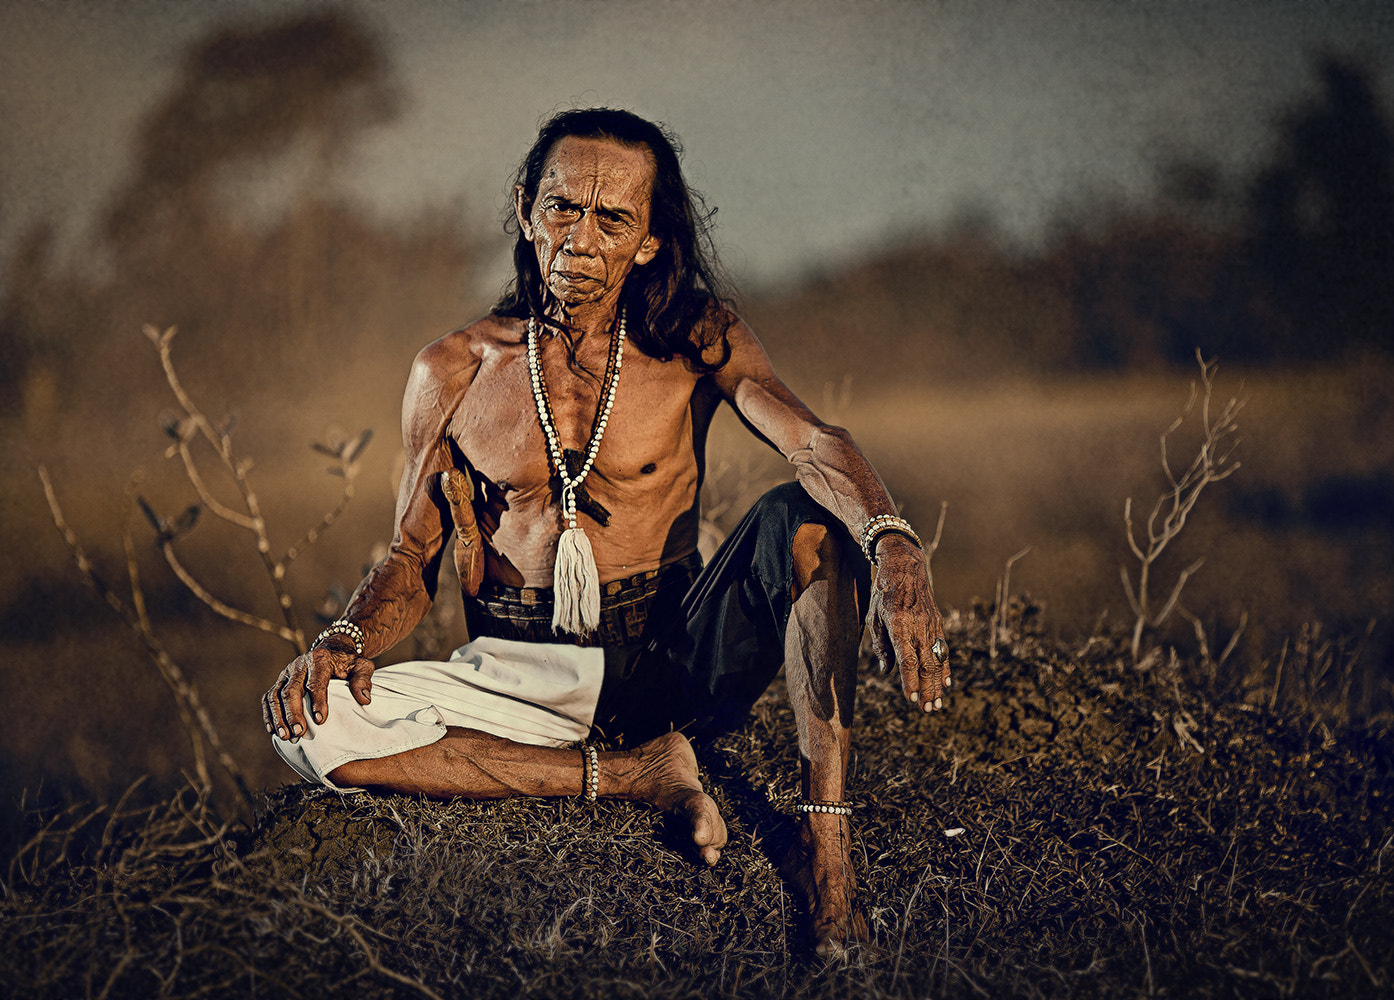 Photograph DAYAK LOSARANG INDONESIA by abe less on 500px